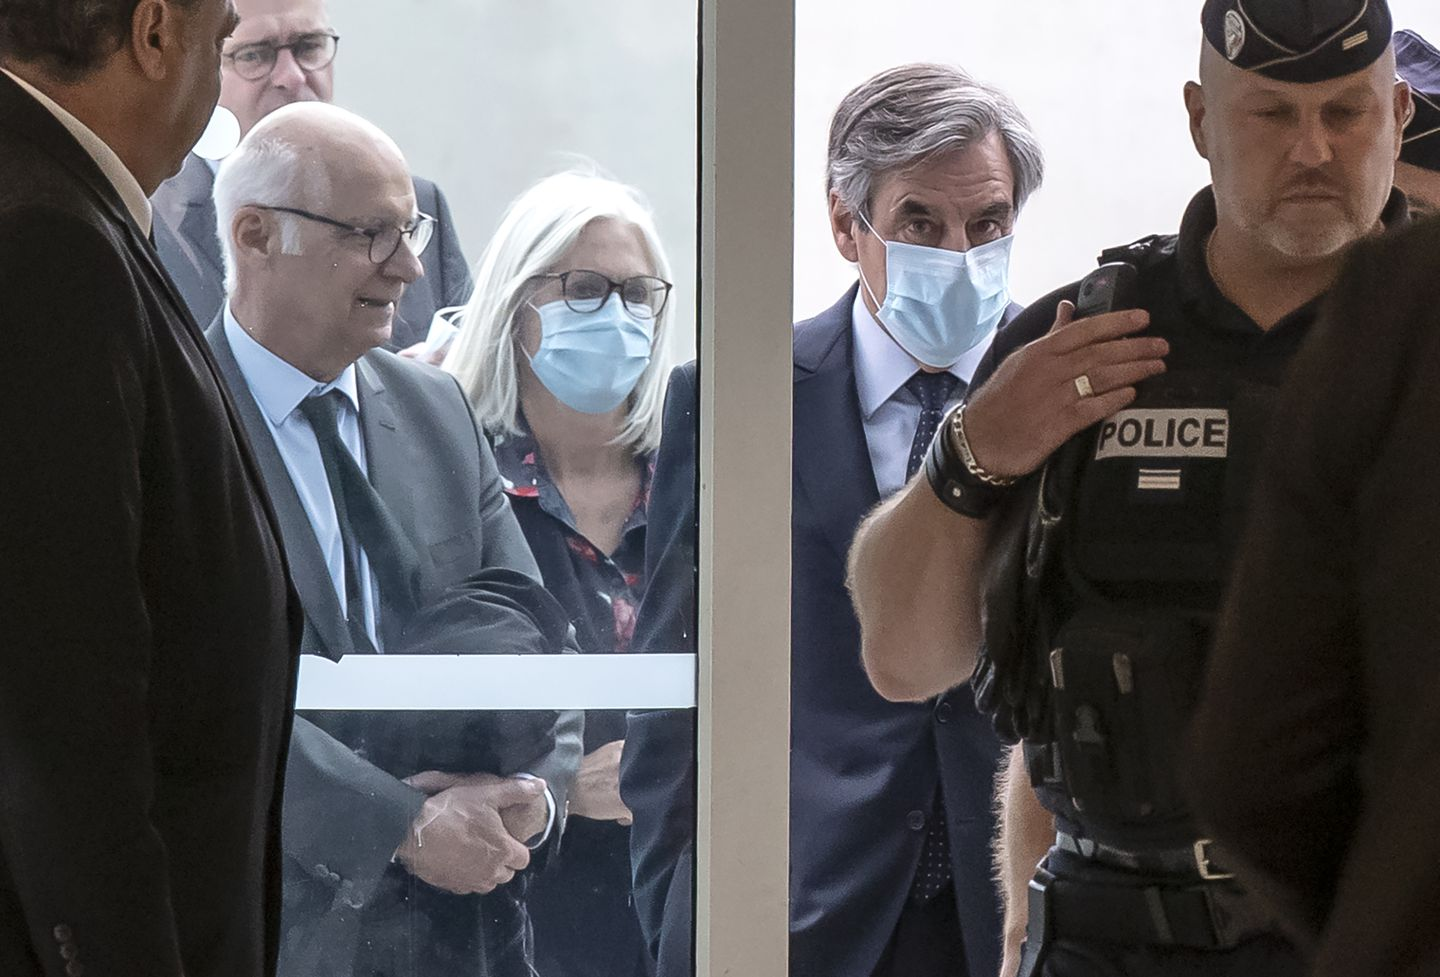 France's former prime minister François Fillon and his wife Penelope wore protective masks as they arrived at the Paris courthouse on Monday.